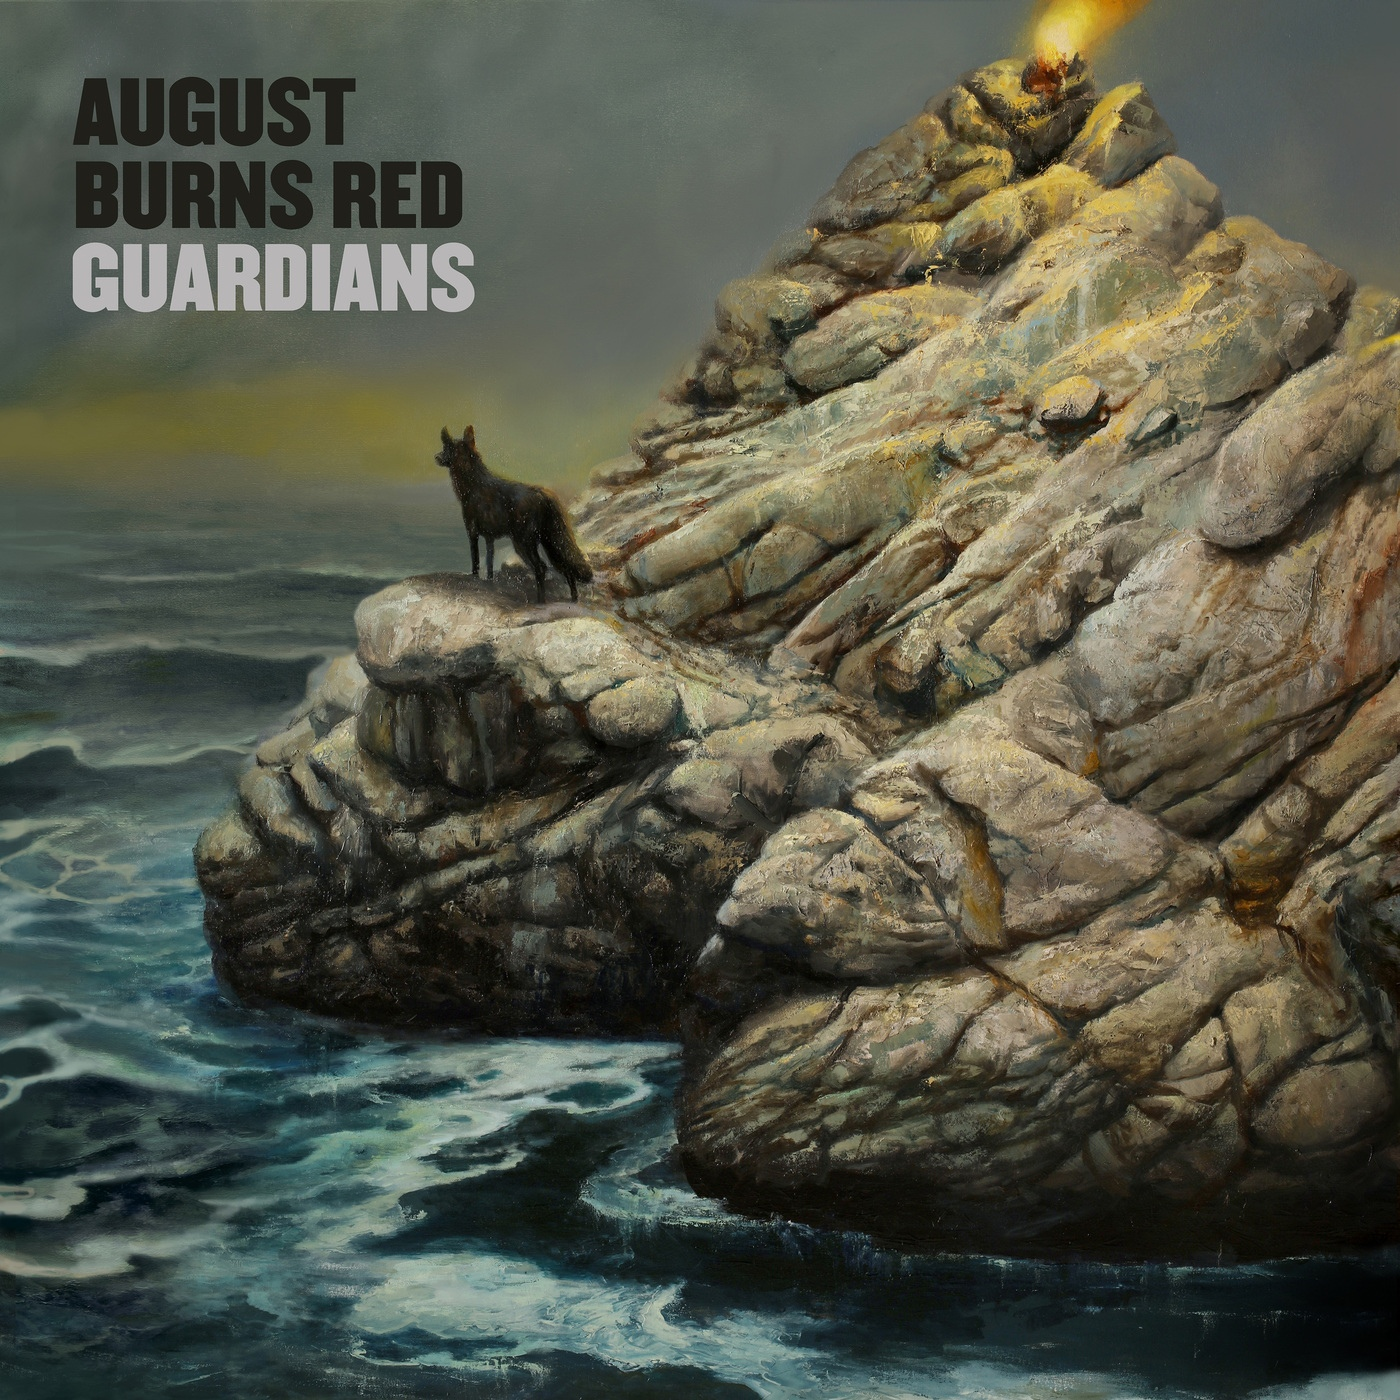 August Burns Red - Guardians (2020)